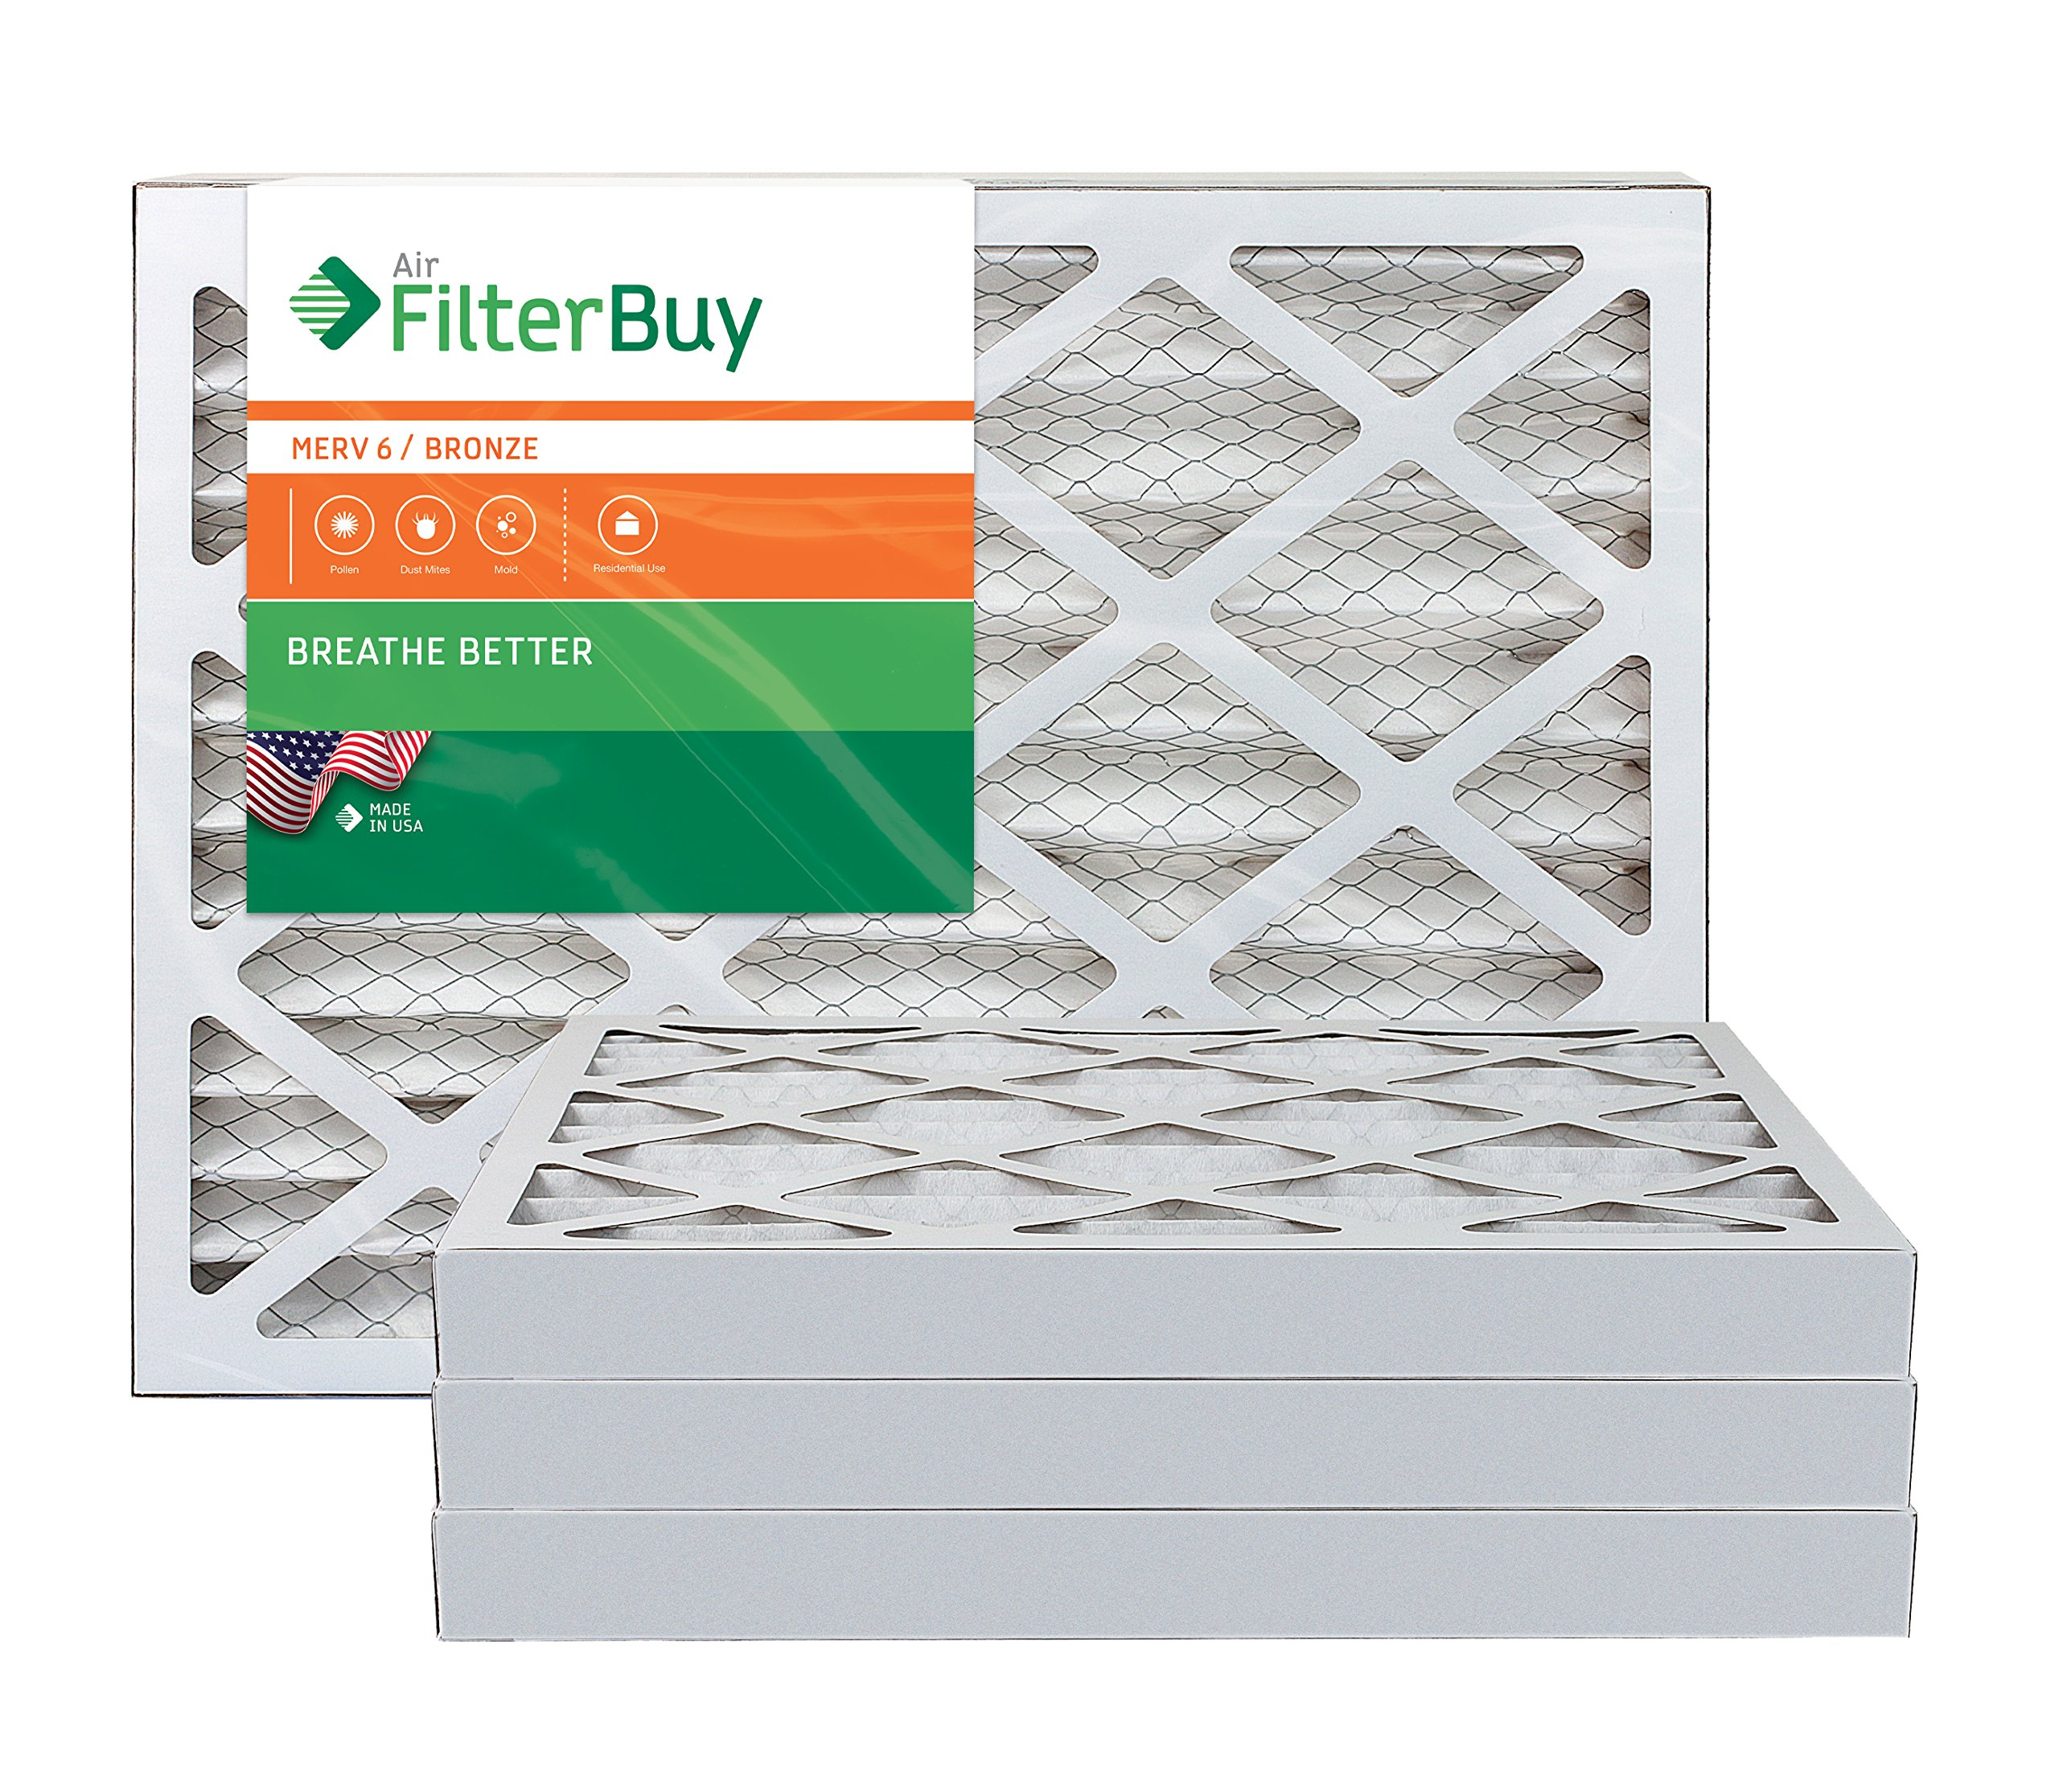 AFB Bronze MERV 6 16x20x2 Pleated AC Furnace Air Filter. Pack of 4 Filters. 100% produced in the USA.